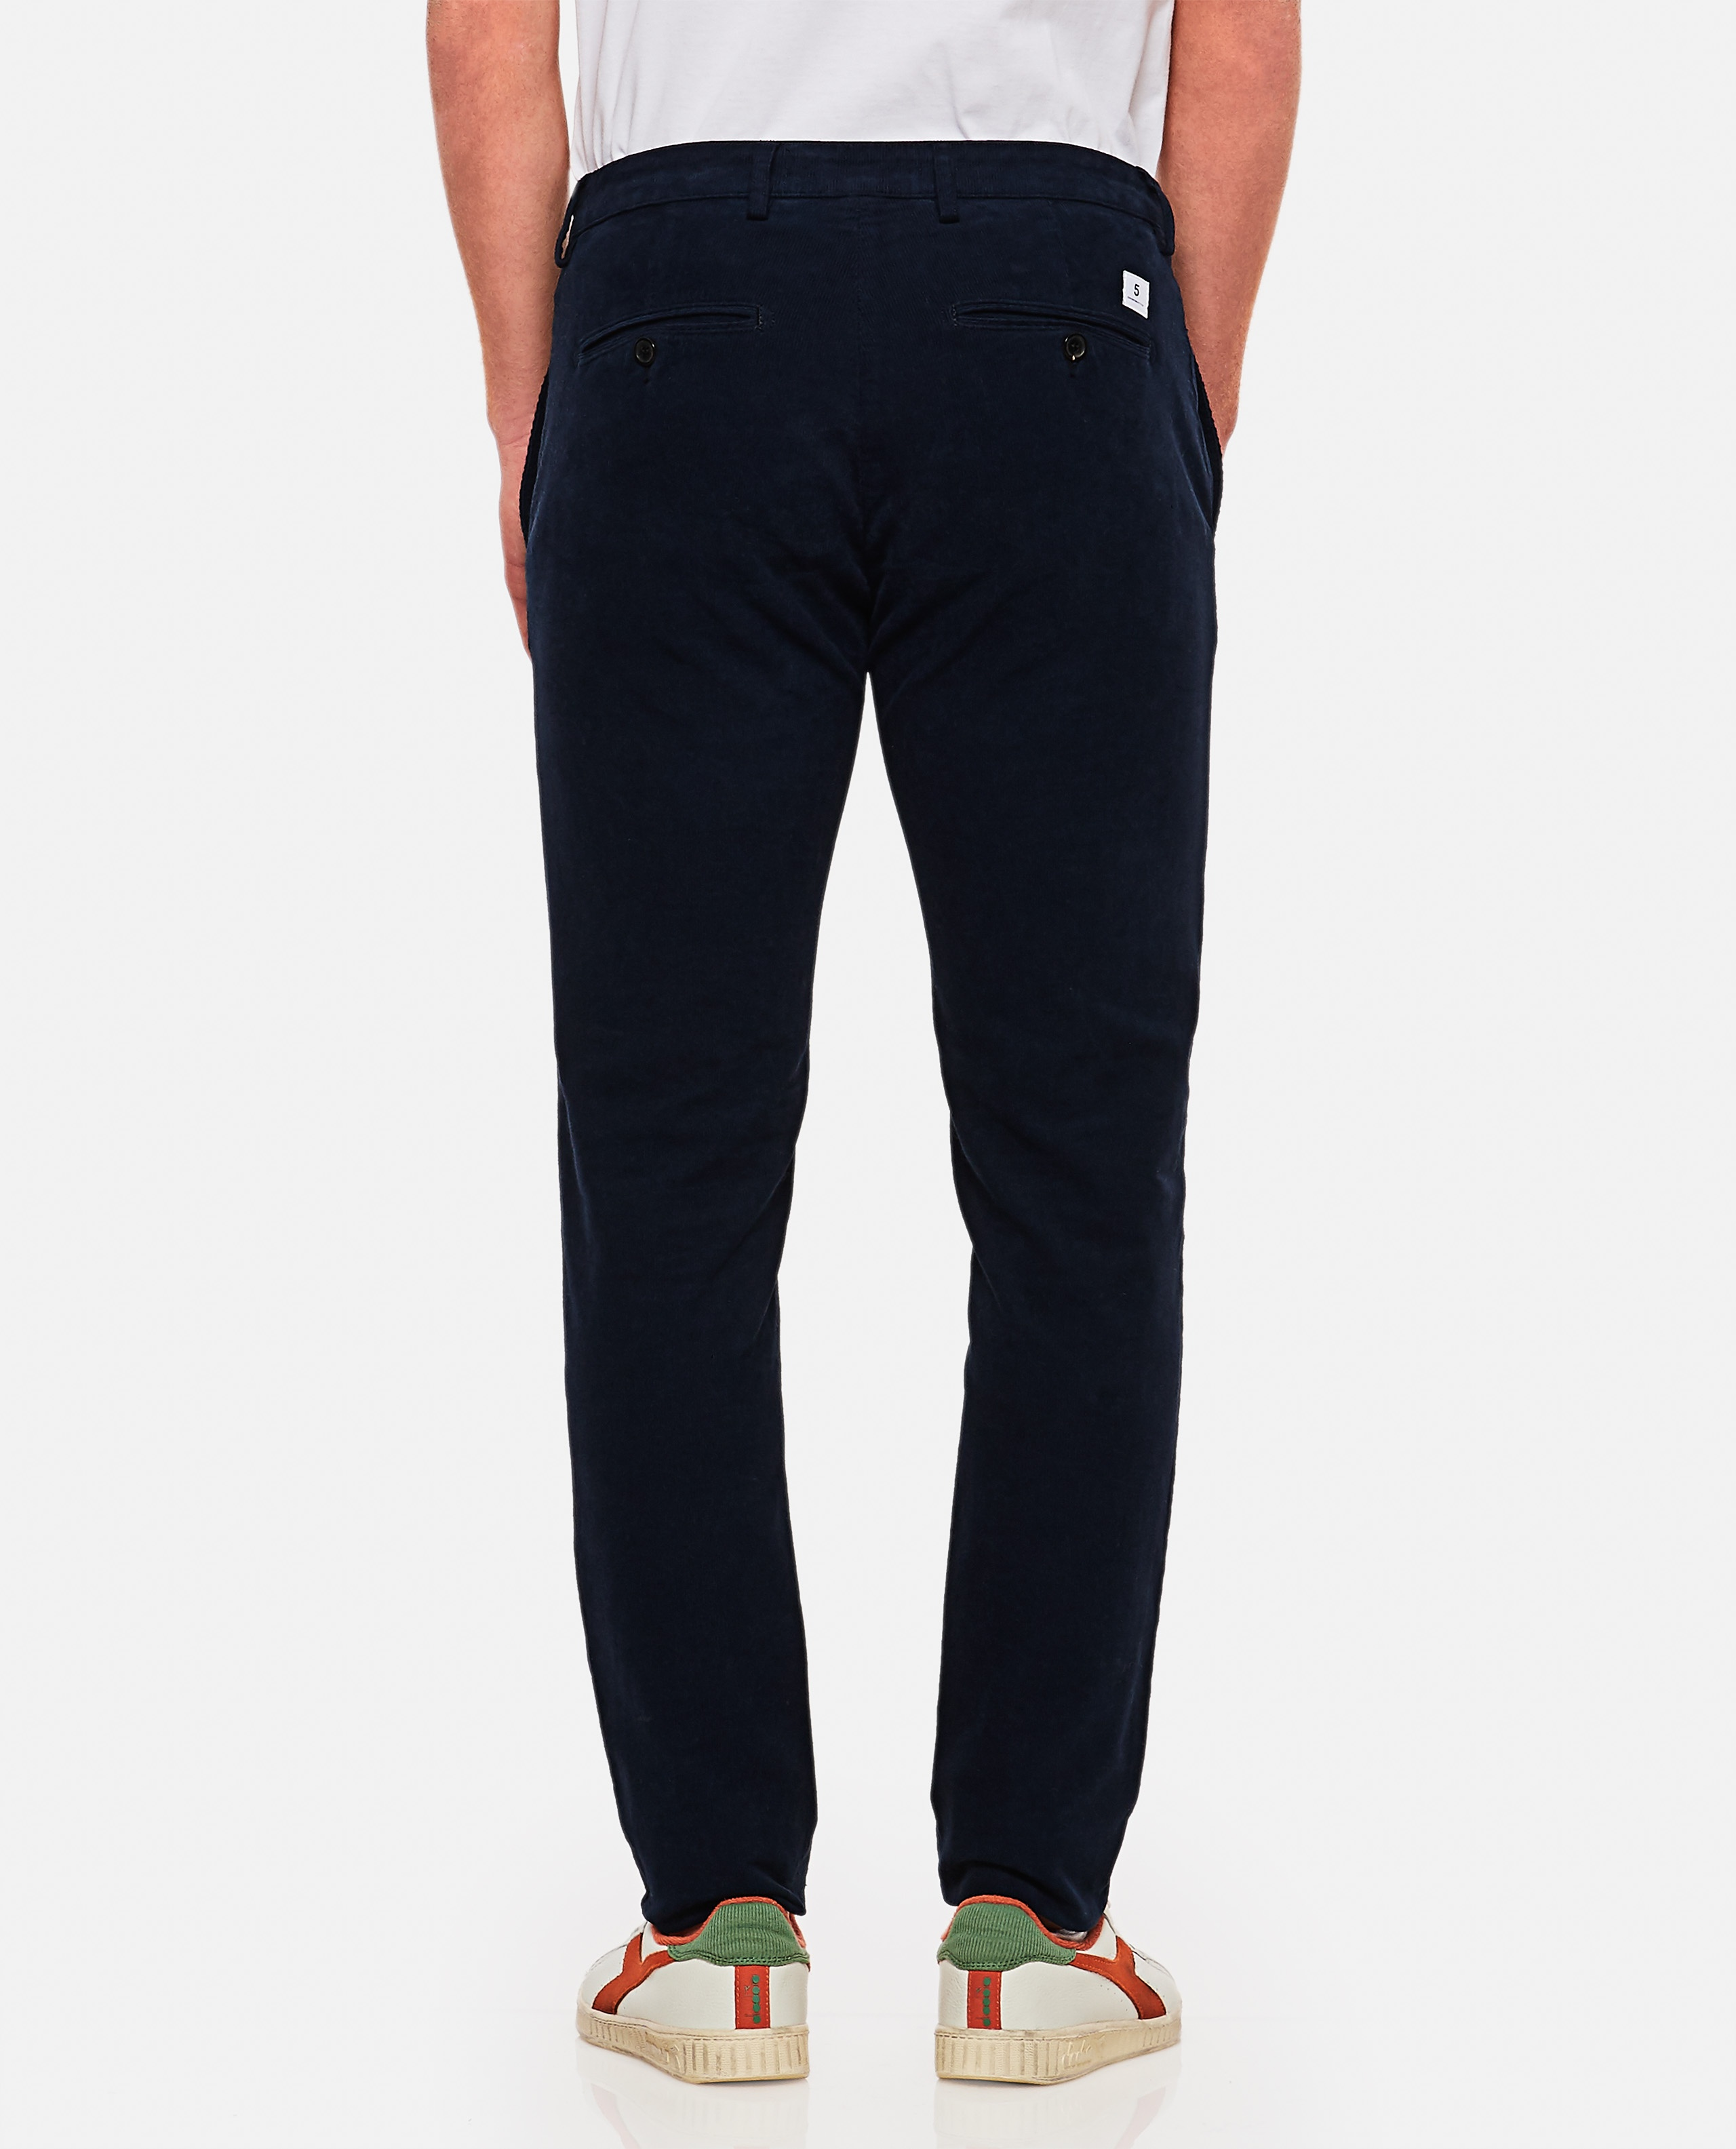 Chino cotton trousers Men Department Five 000192830028687 3